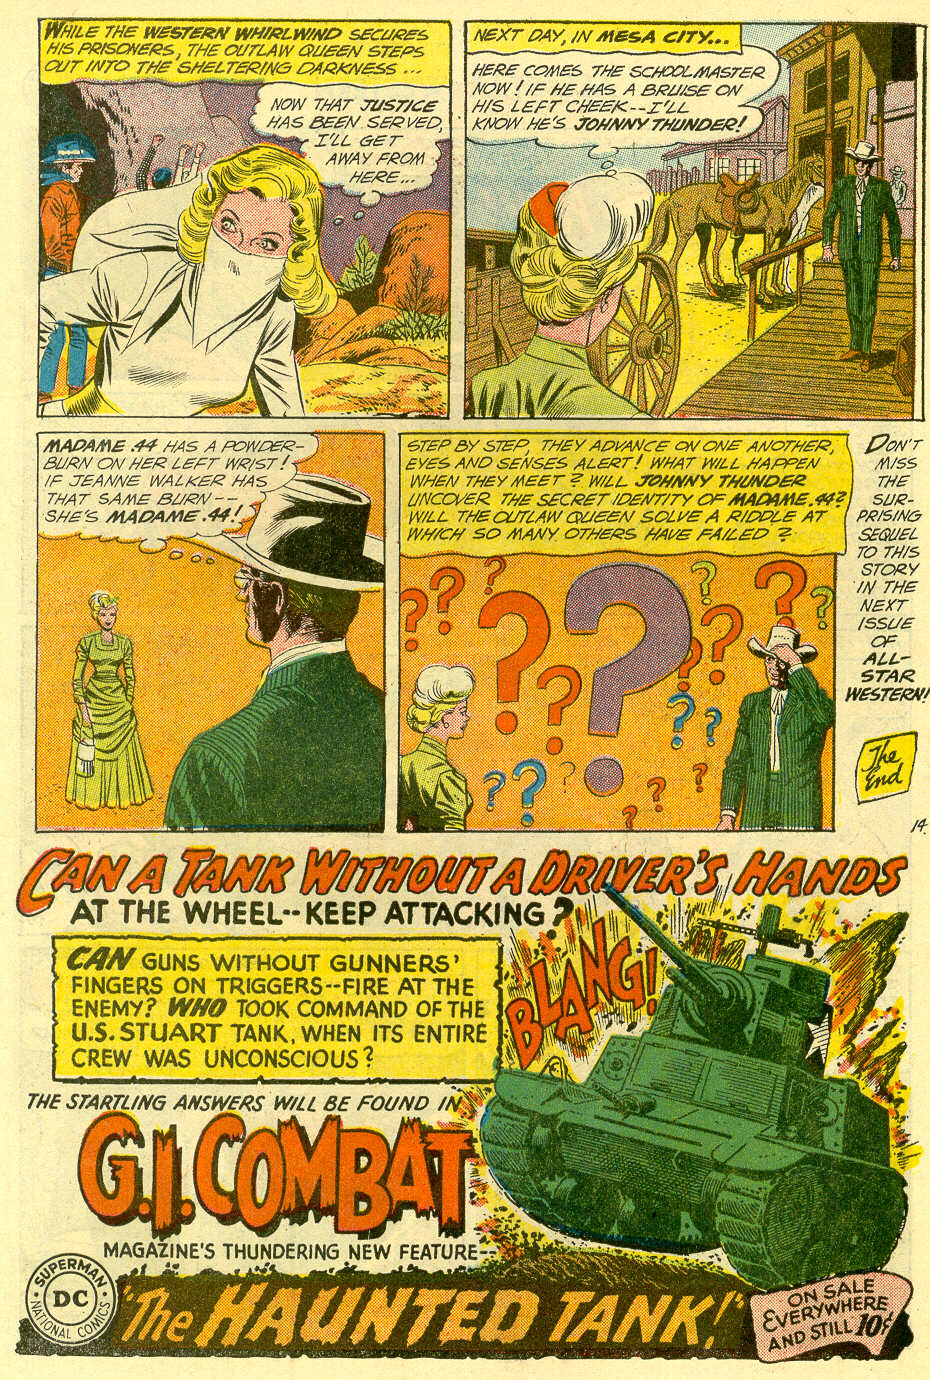 Read online All-Star Western (1951) comic -  Issue #119 - 18